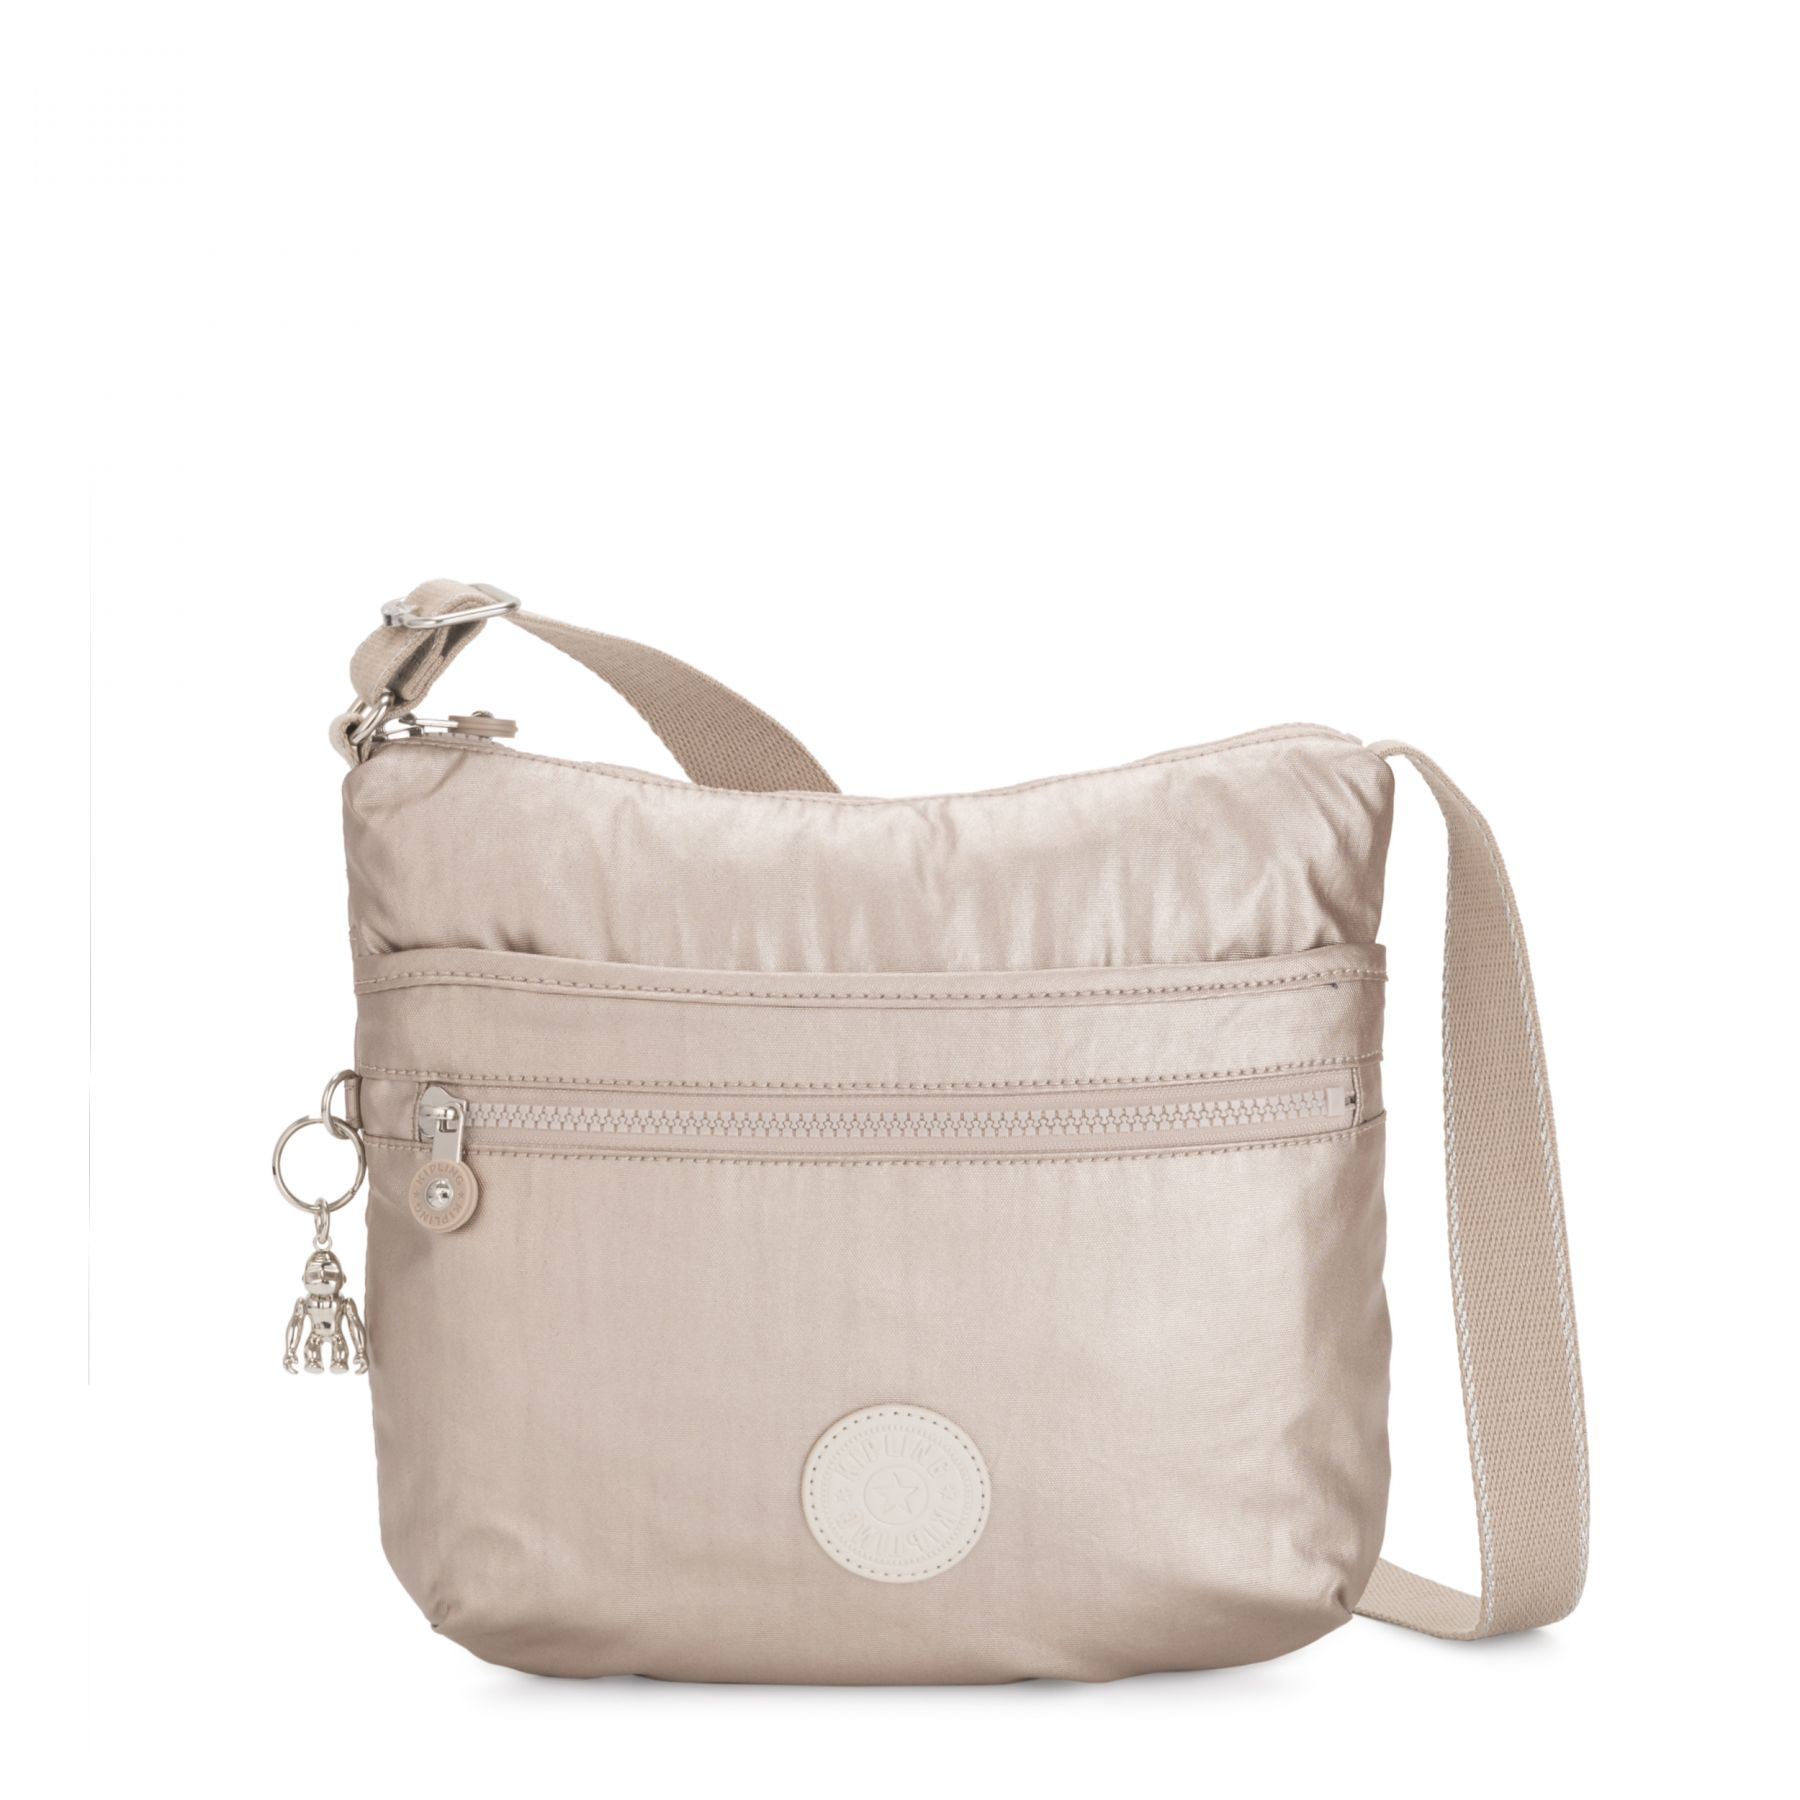 ARTO Latest Shoulder Bags by Kipling - Front view